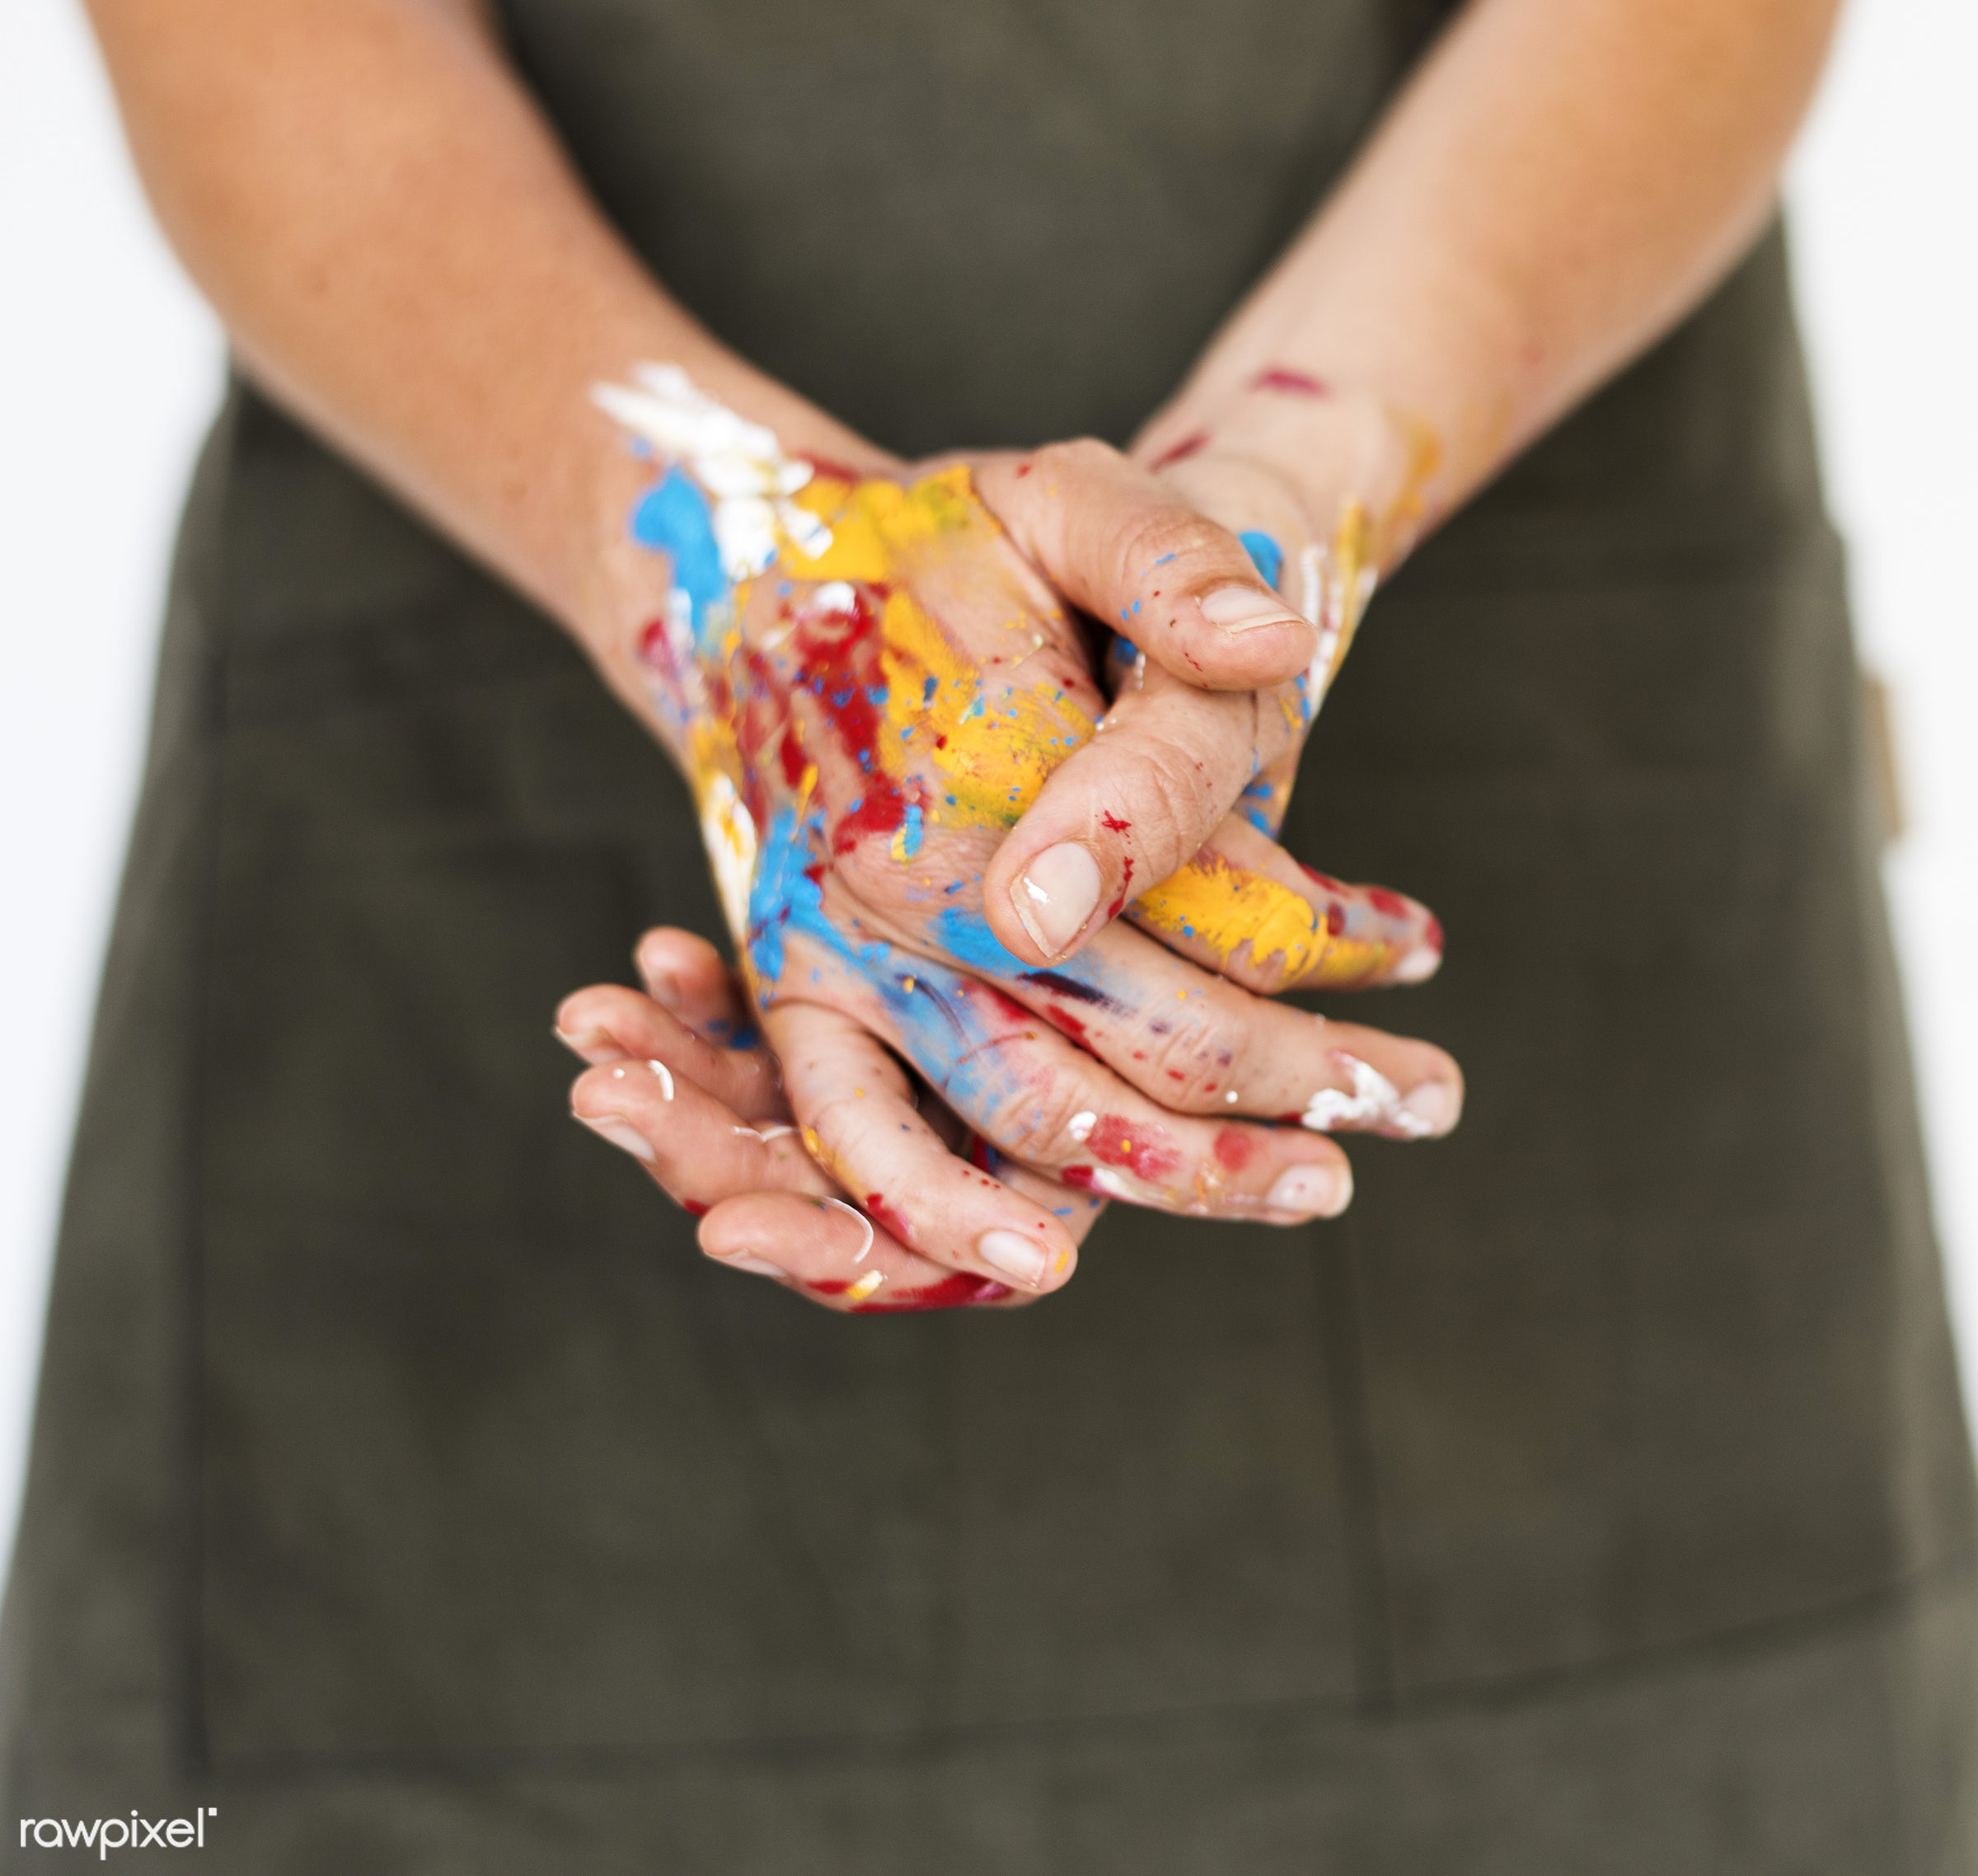 art, artist, background, be creative, casual, colour, creative, creativity, dirty, emotion, expression, female, gesture,...